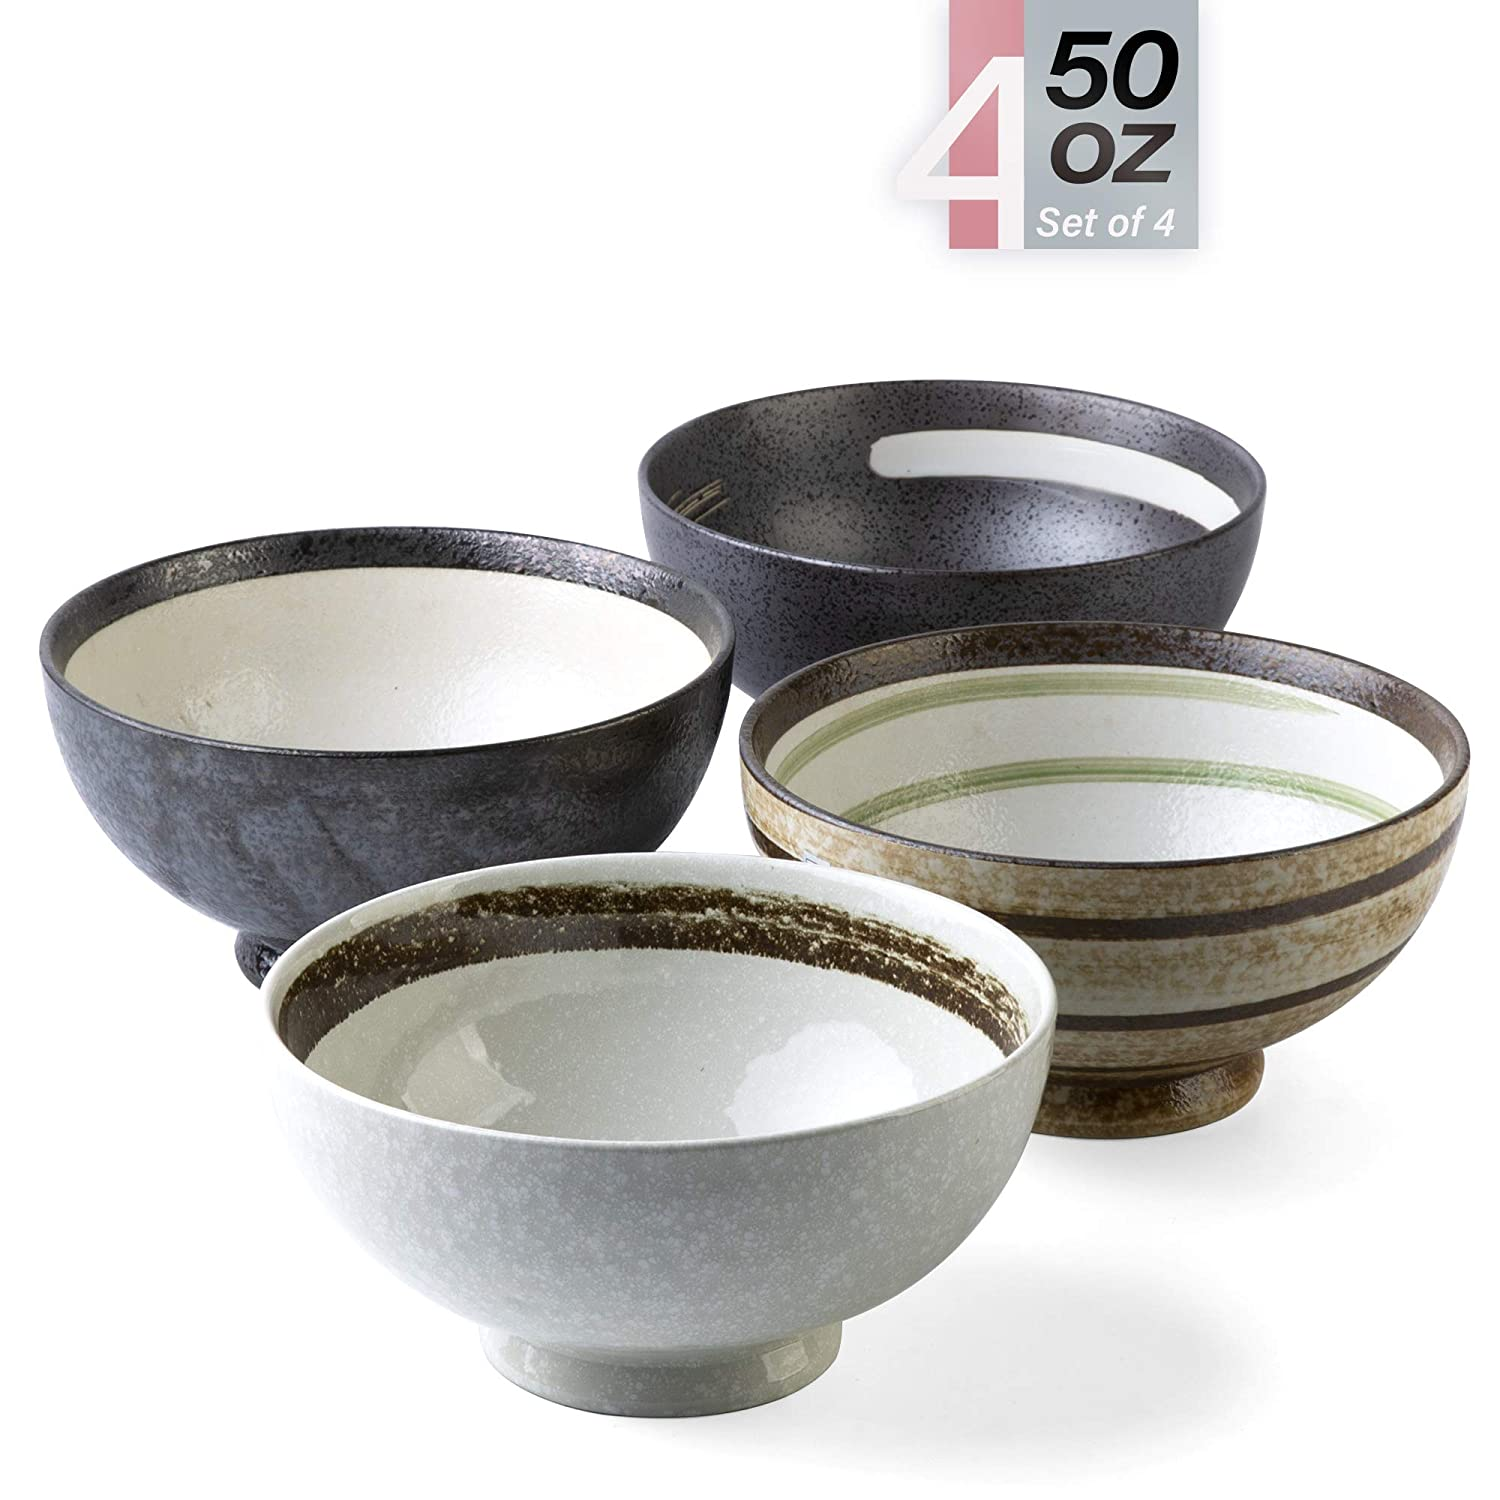 Porcelain Bowls – 50 Ounce Ceramic Large Bowl for Pasta, Cereal, Salad, Soup, Wide and Deep - Set of 4 in Hand Painted Pattern, Microwave and Dishwasher Safe